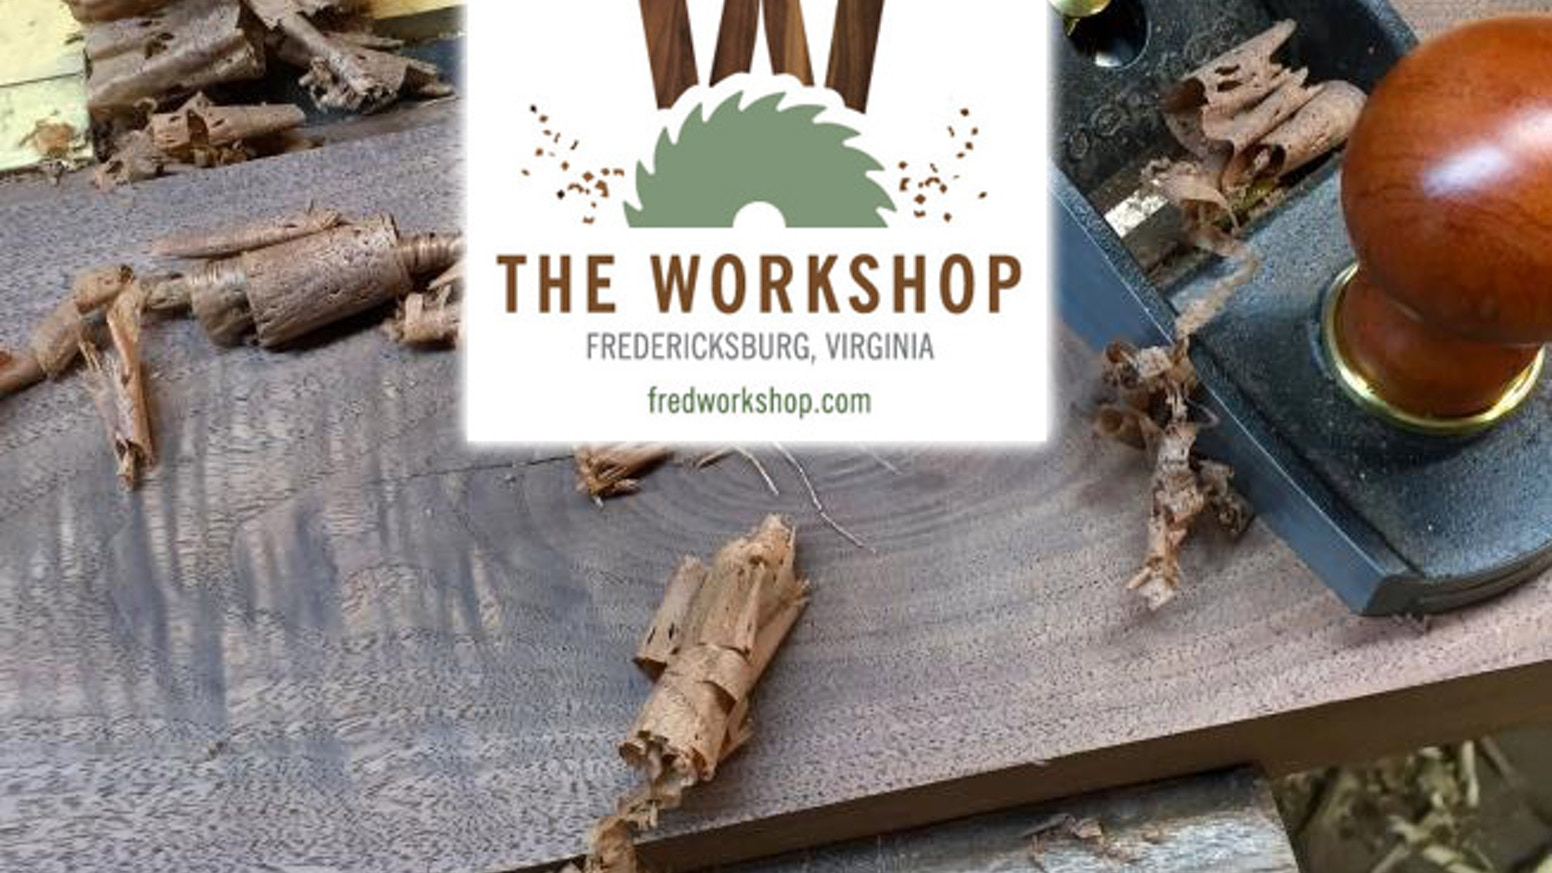 A membership-based facility where you can gain access to the tools, space, and assistance to learn or improve your woodworking skills.